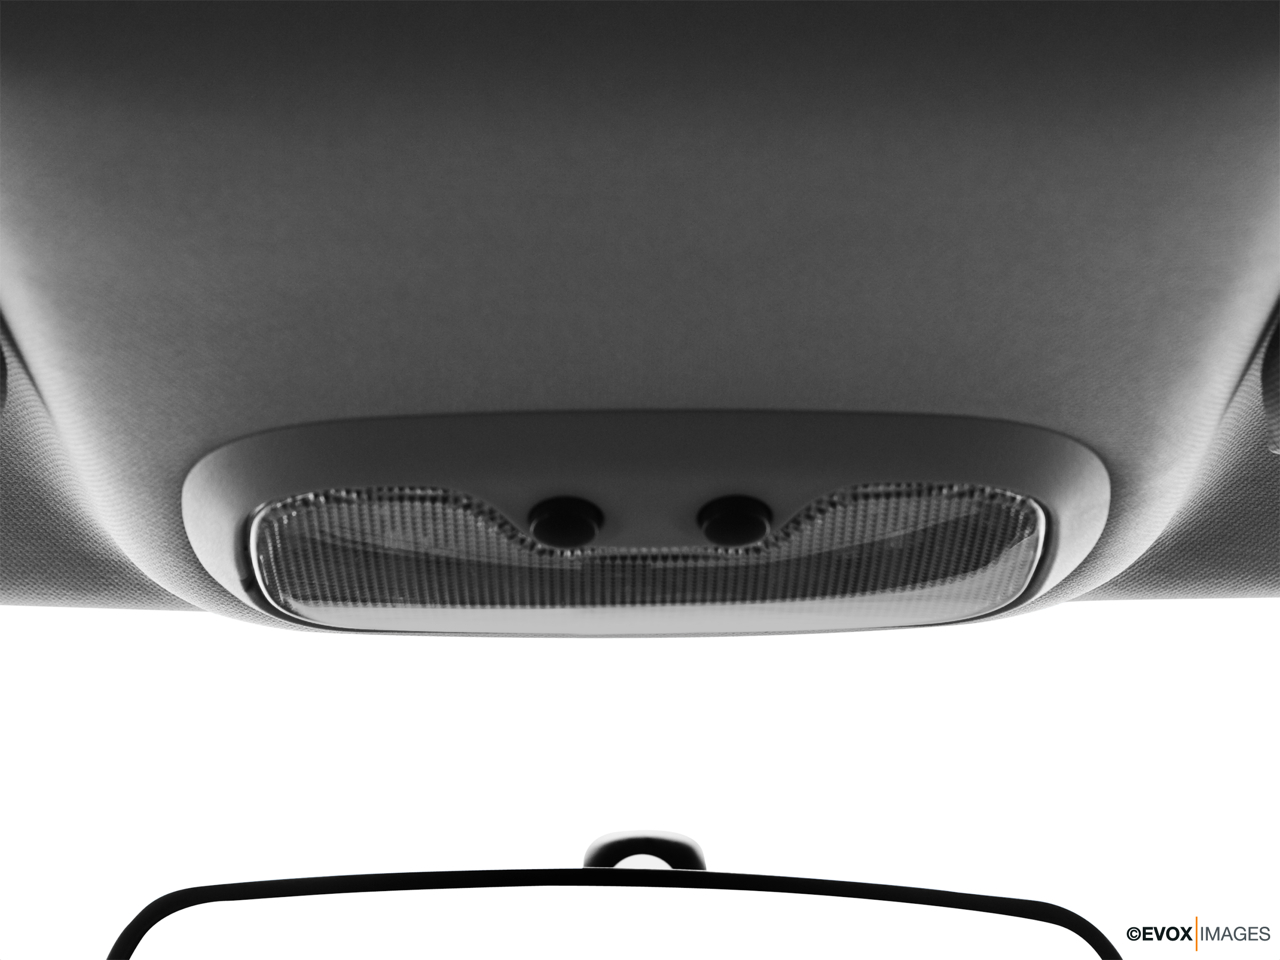 2010 Jeep Patriot Limited Courtesy lamps/ceiling controls.